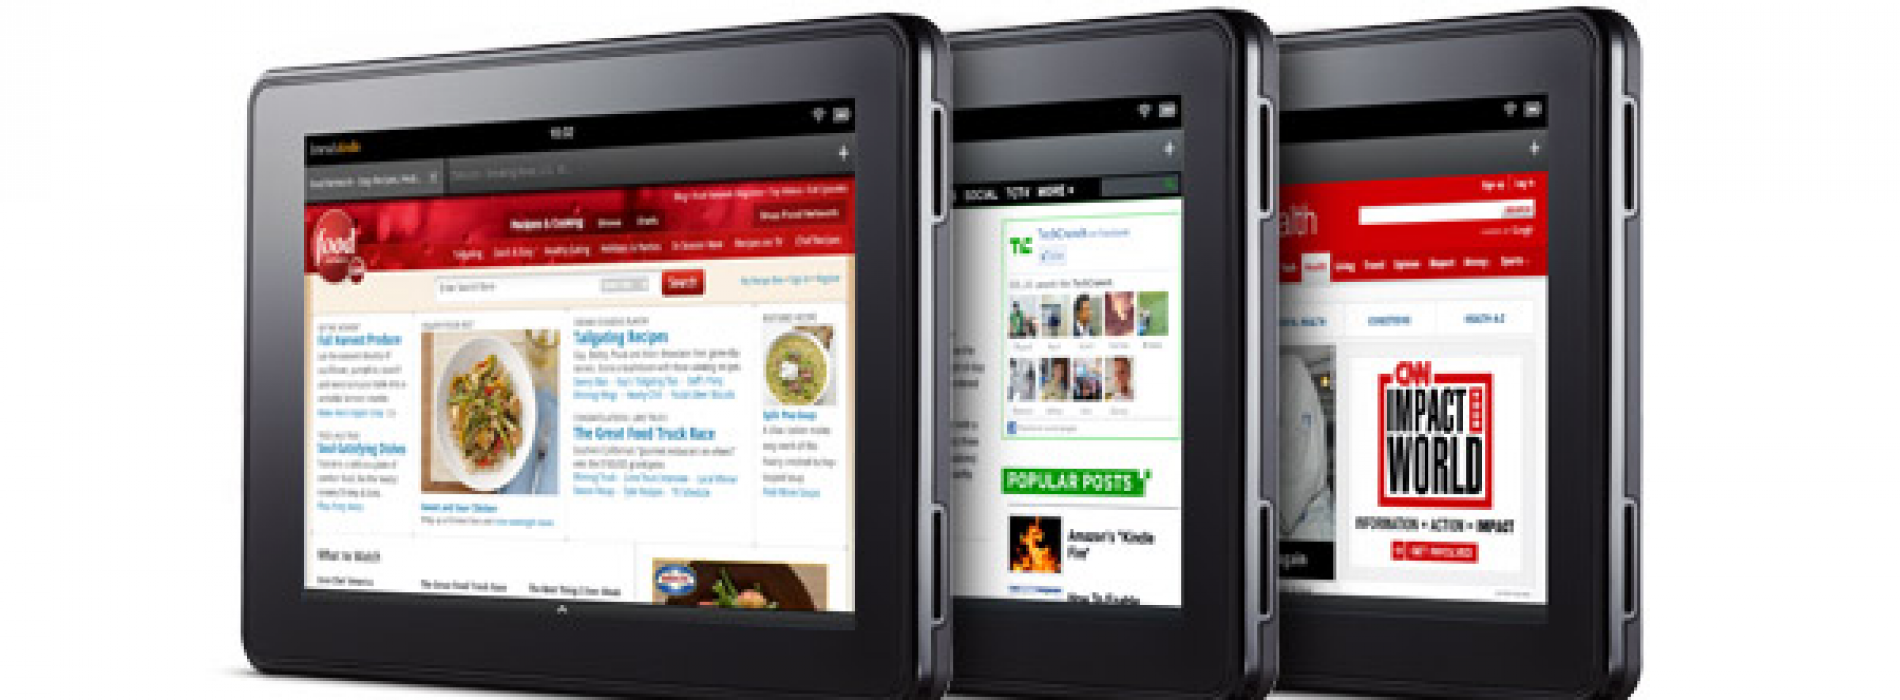 Each Kindle Fire generating more than $100 in additional revenue for Amazon